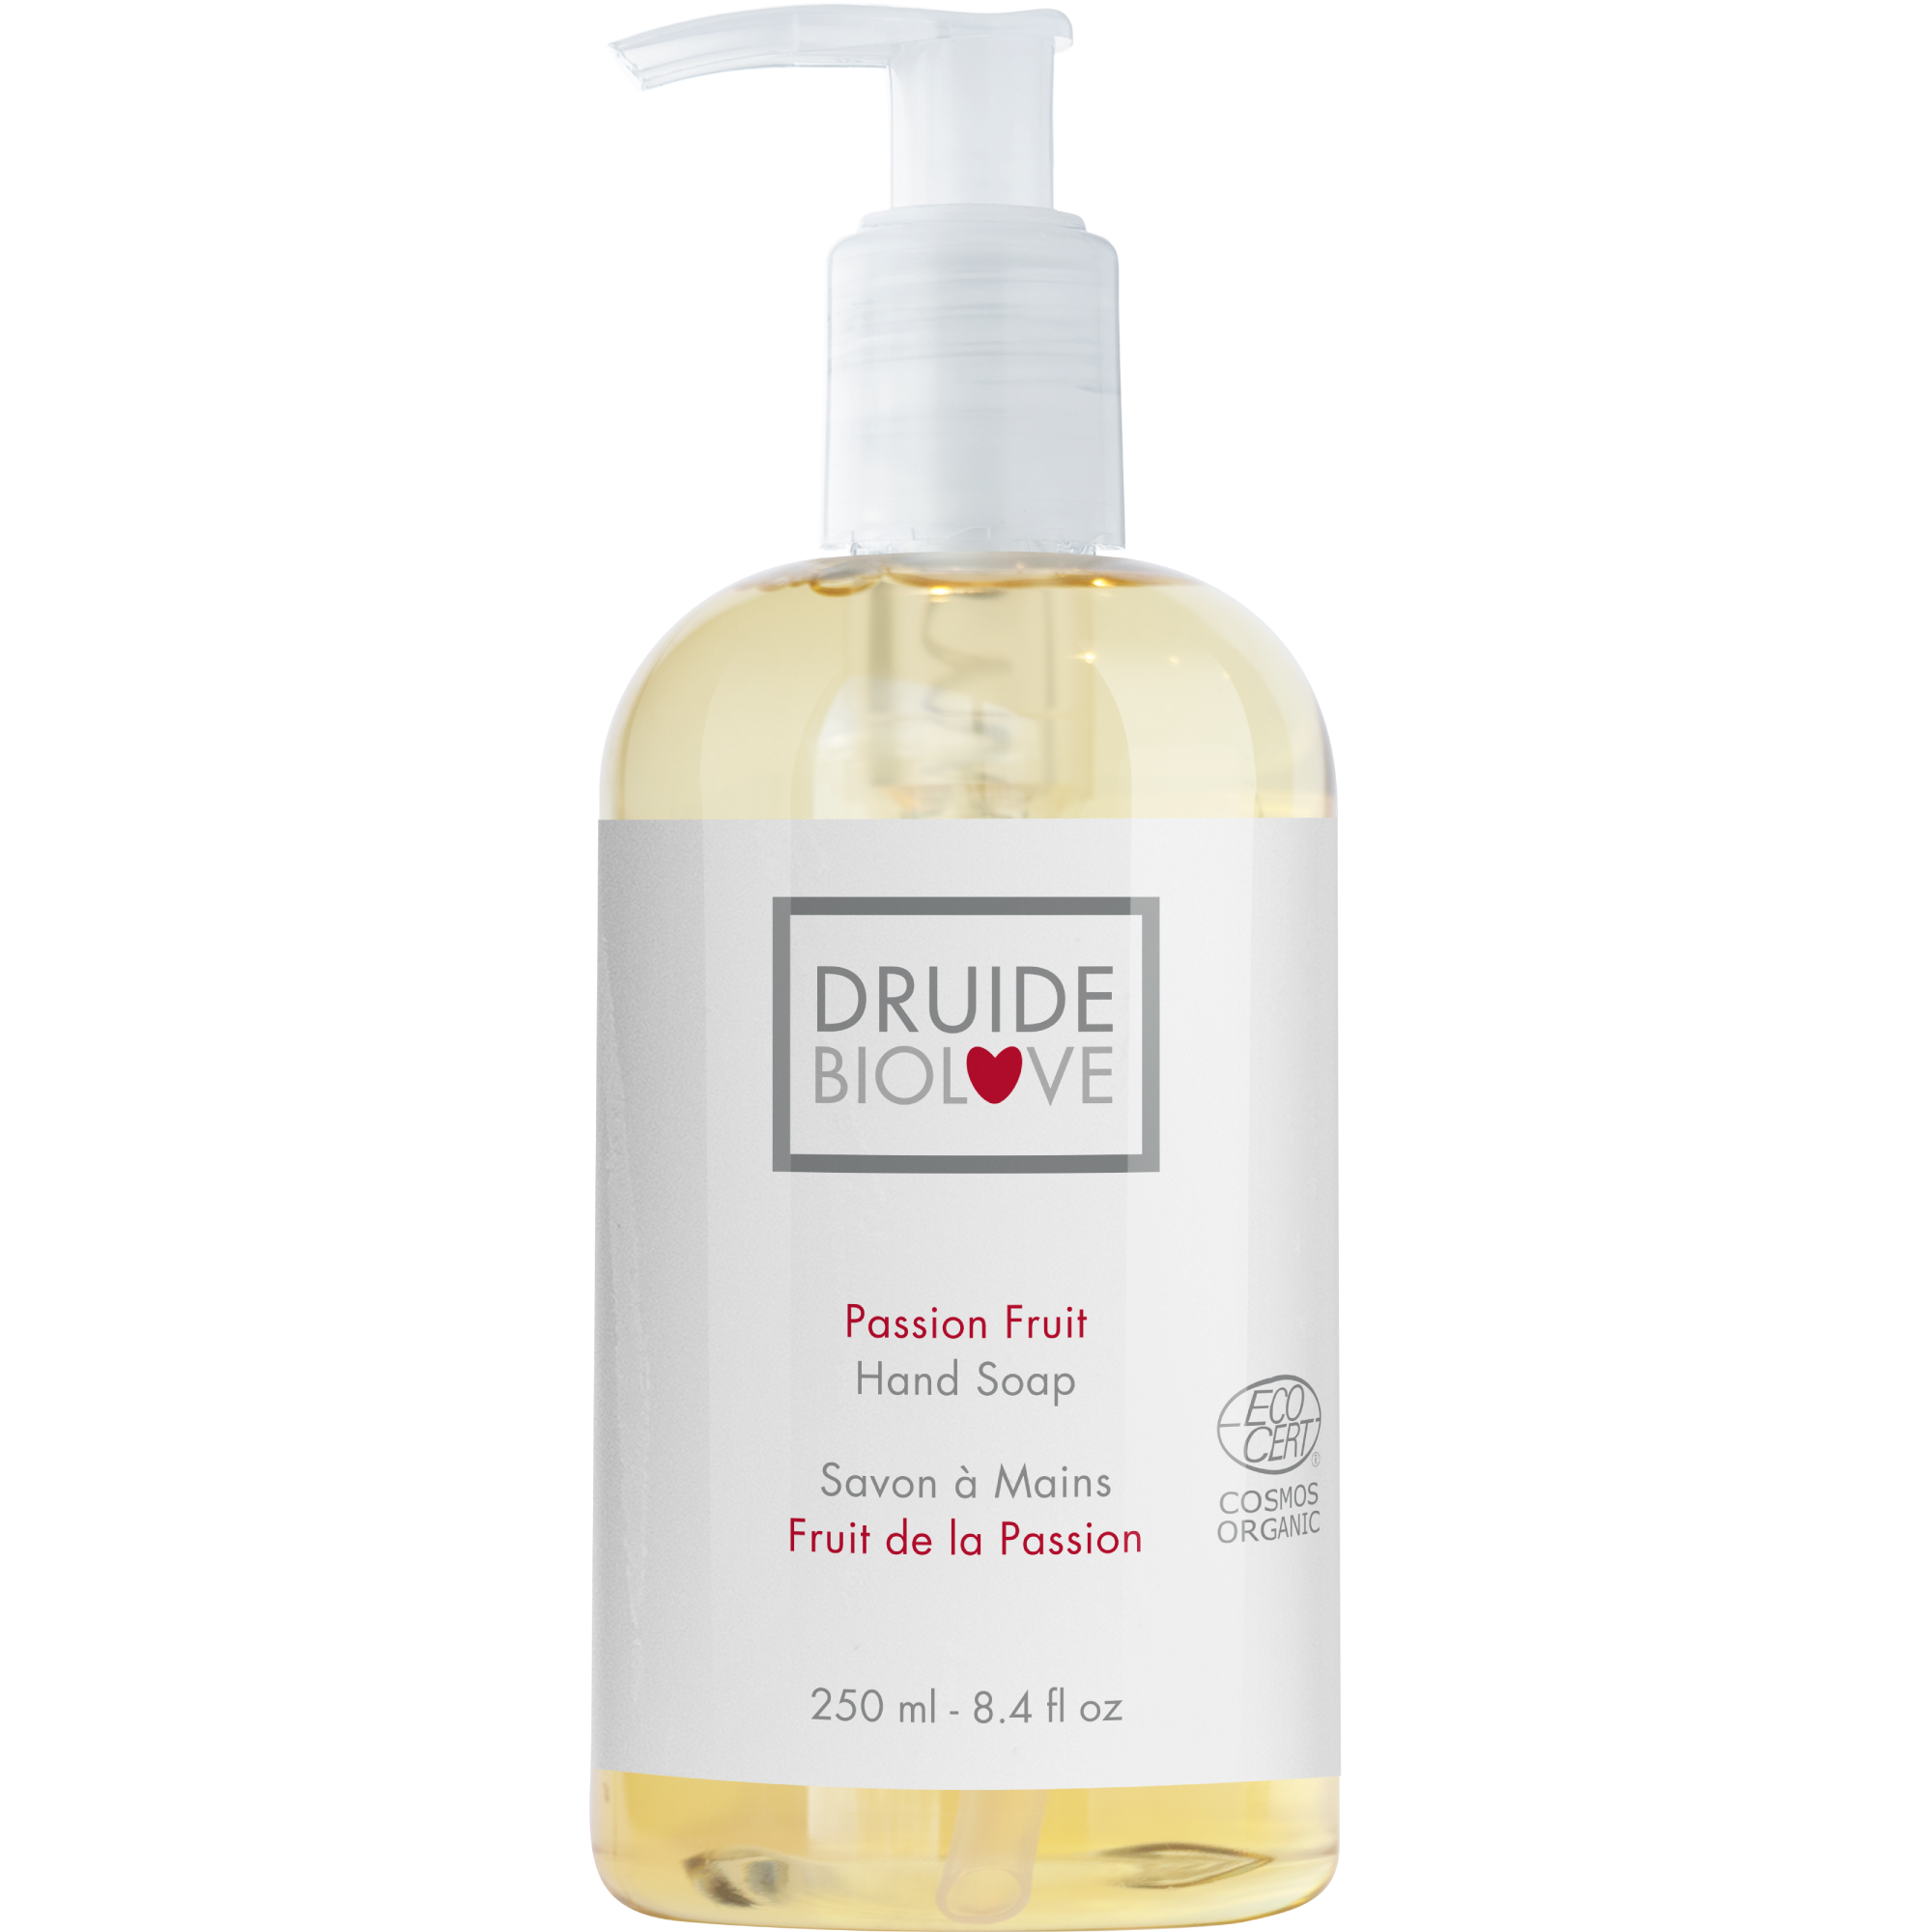 Druide Antiseptic Cleanser Package #1 (Passion Fruit)